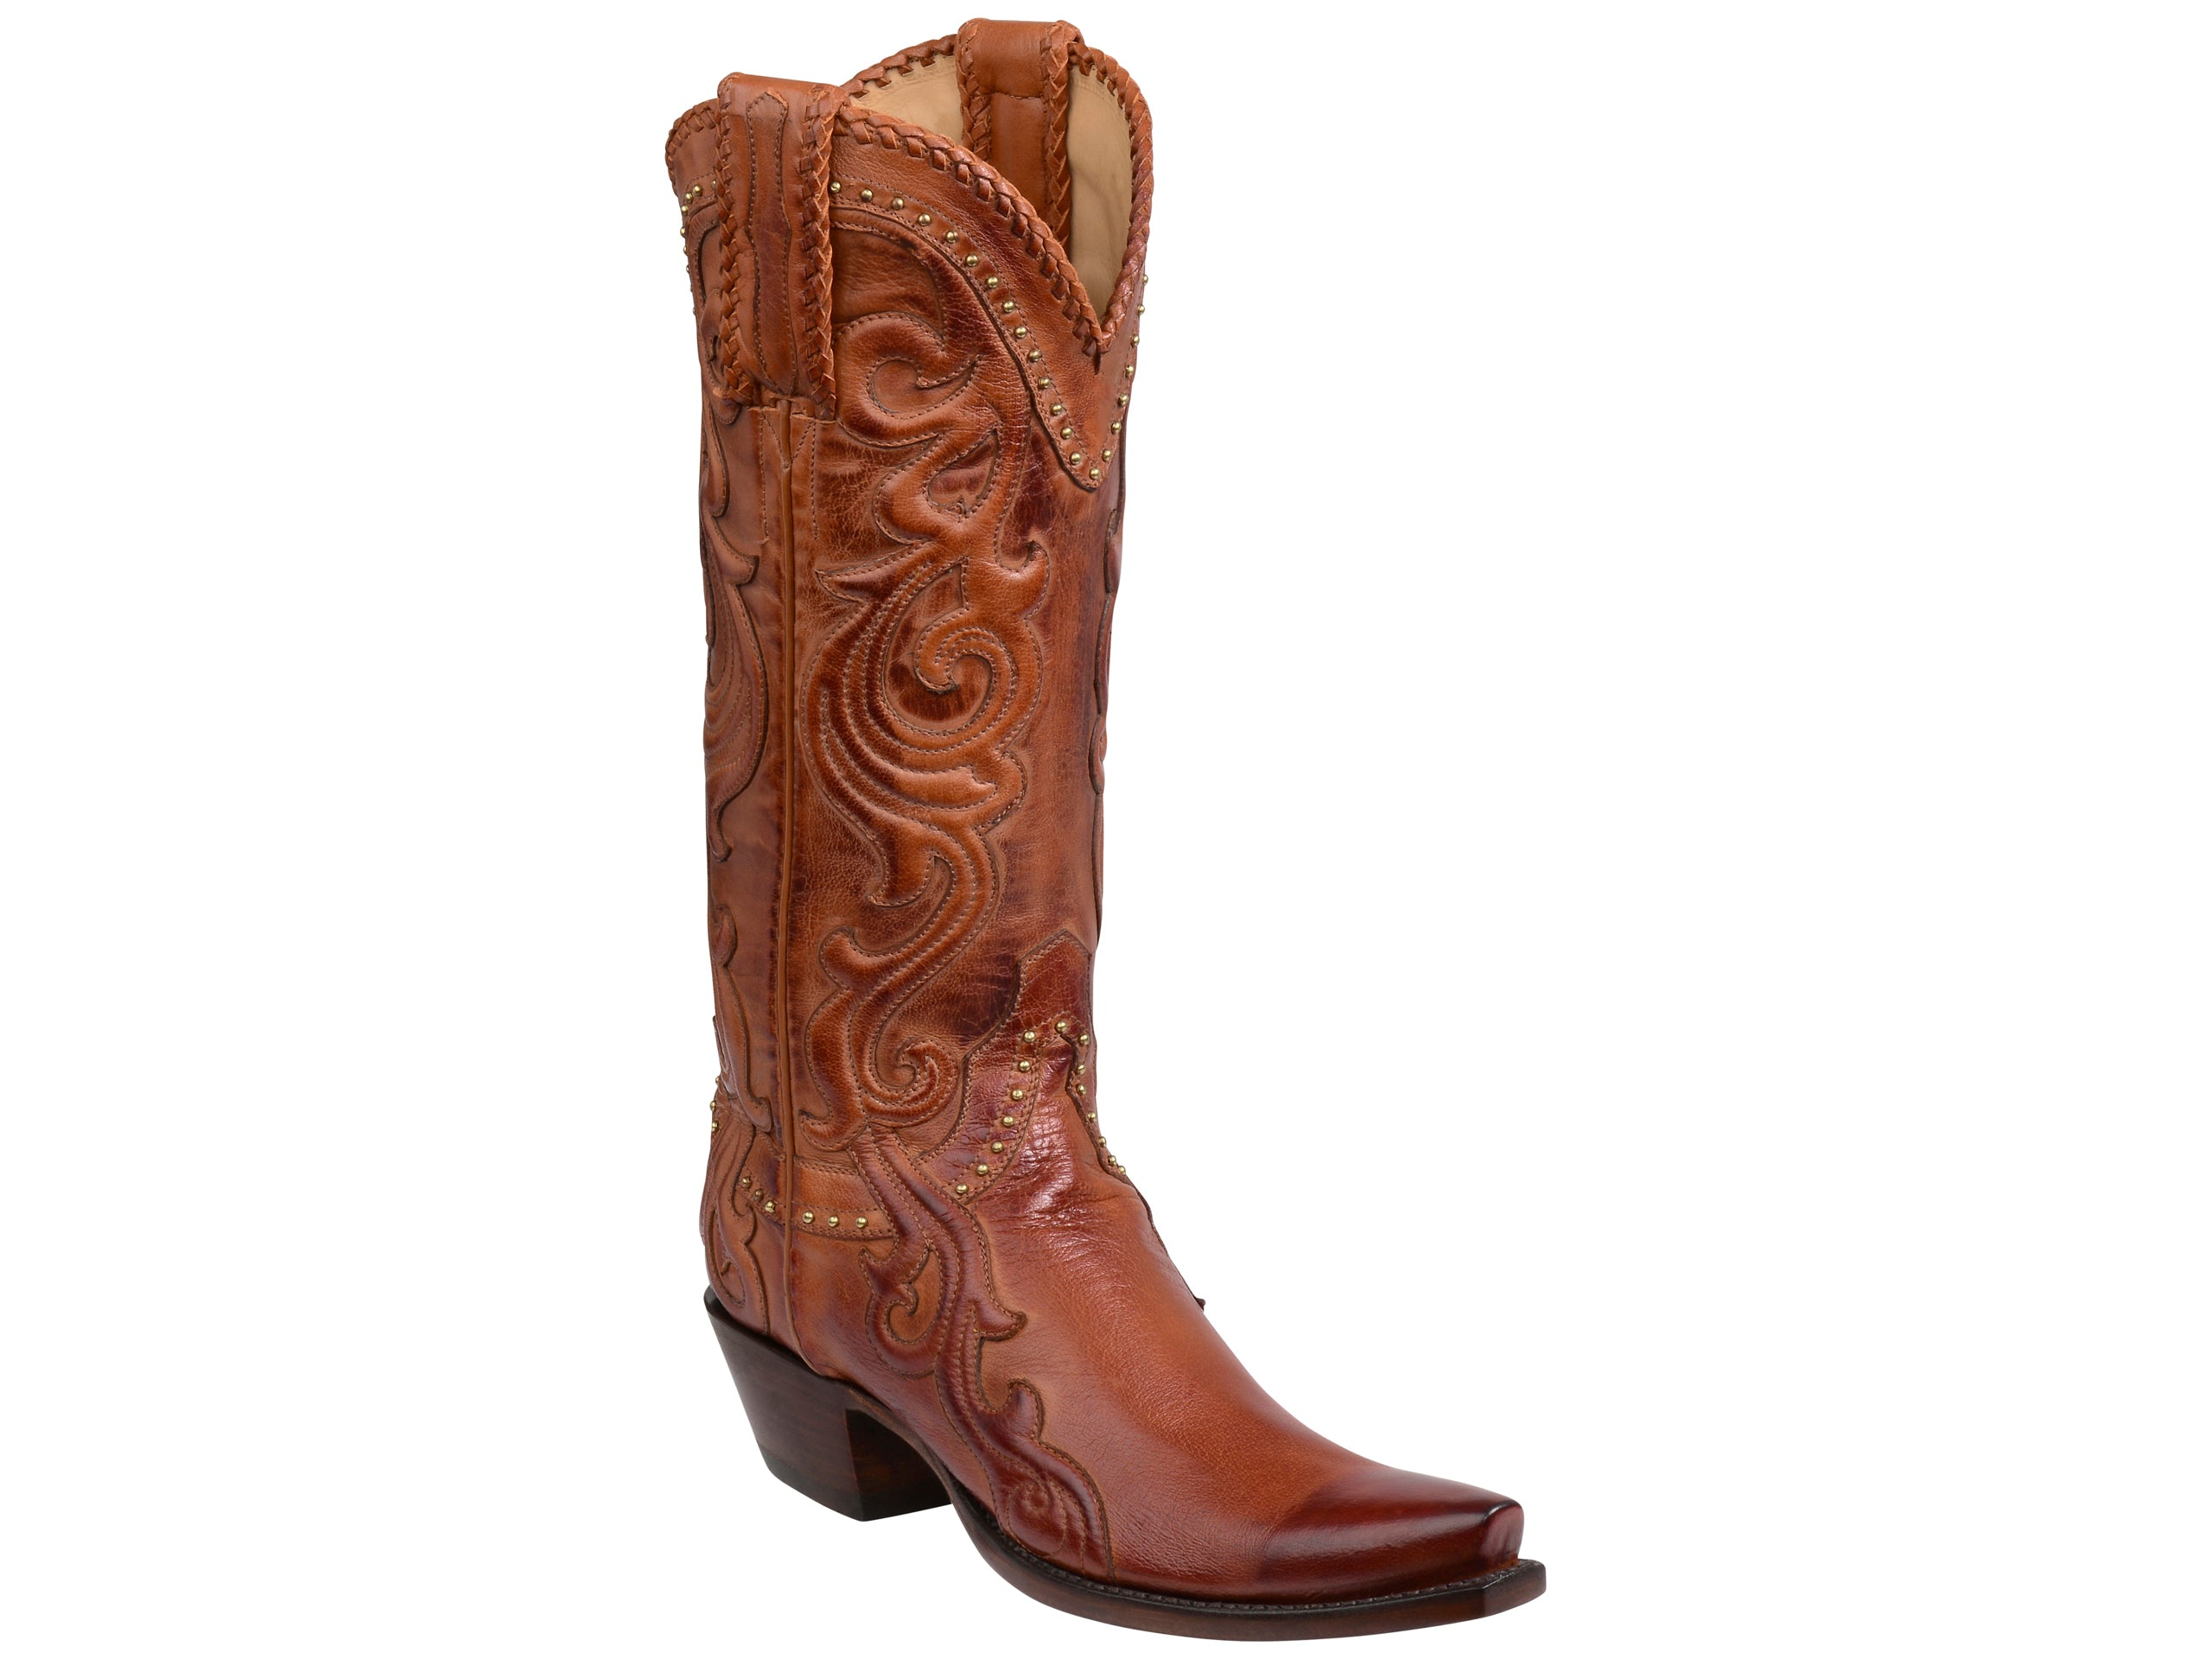 a4b41ae4a8c Women's Lucchese Bootmaker Saratoga Boots #GY4501-S5/4 – Allens Boots